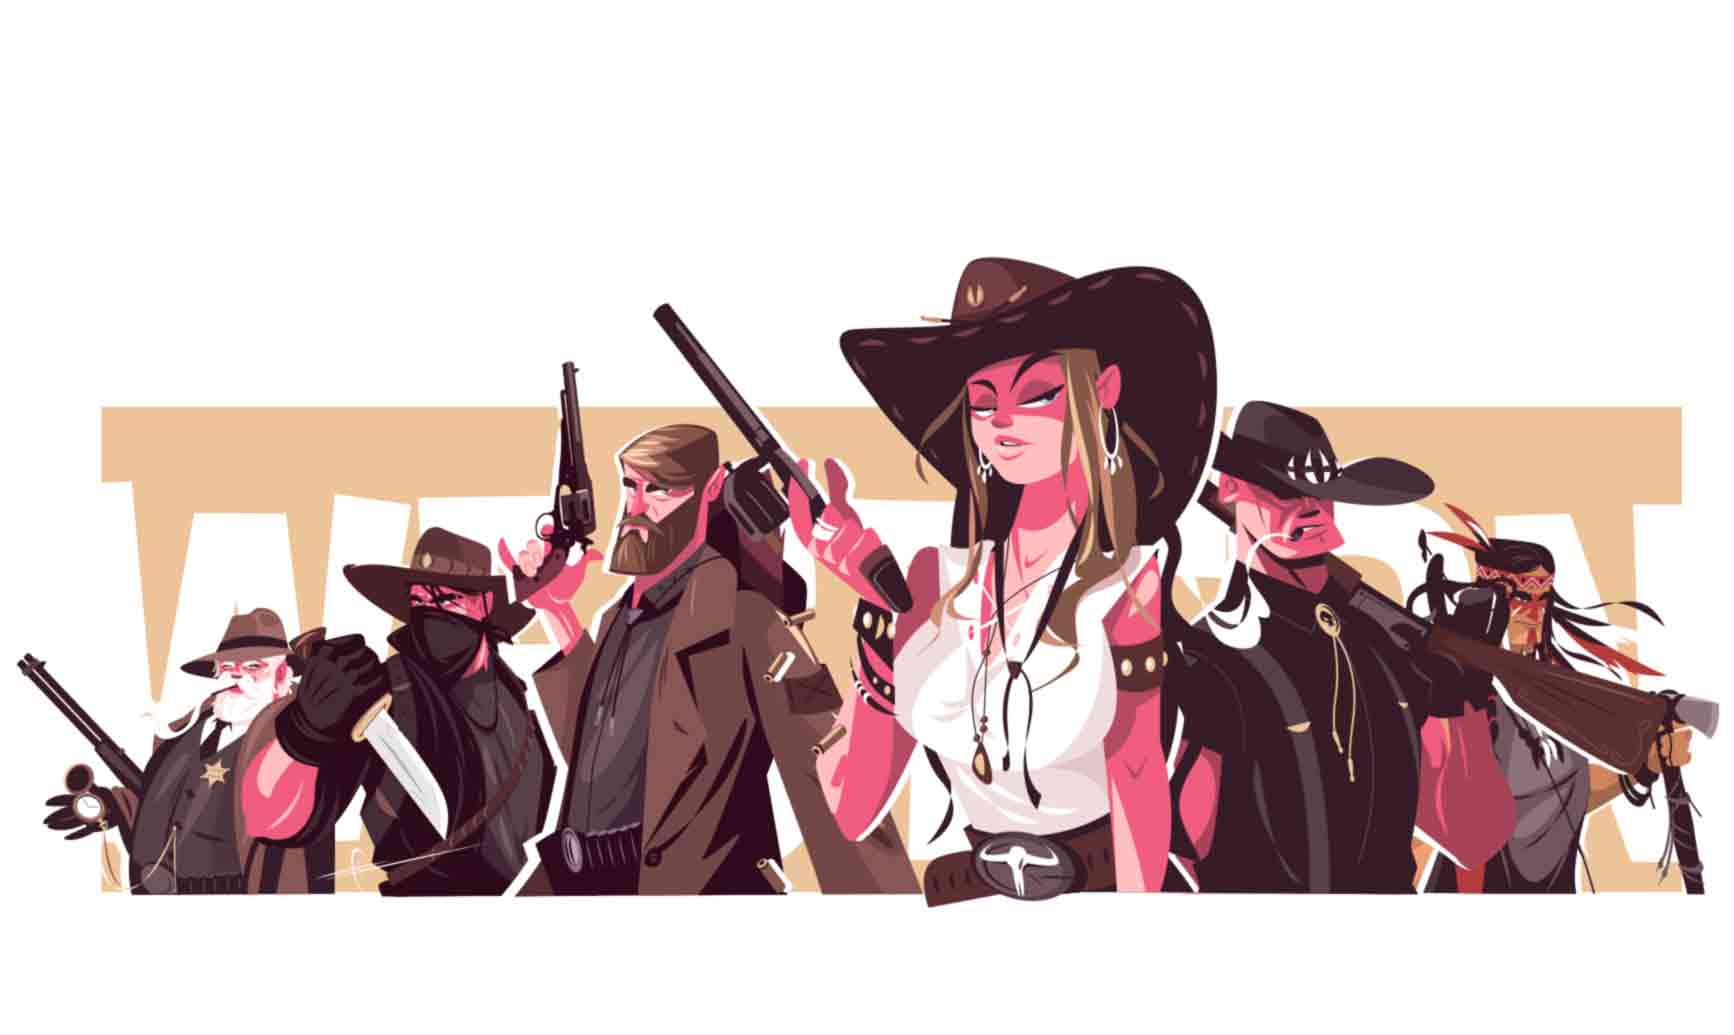 Series of characters illustrations directly from wild wild west. You better do mess around this guys, rules are different here. this gorgeous collection available exclusively on kit8.net